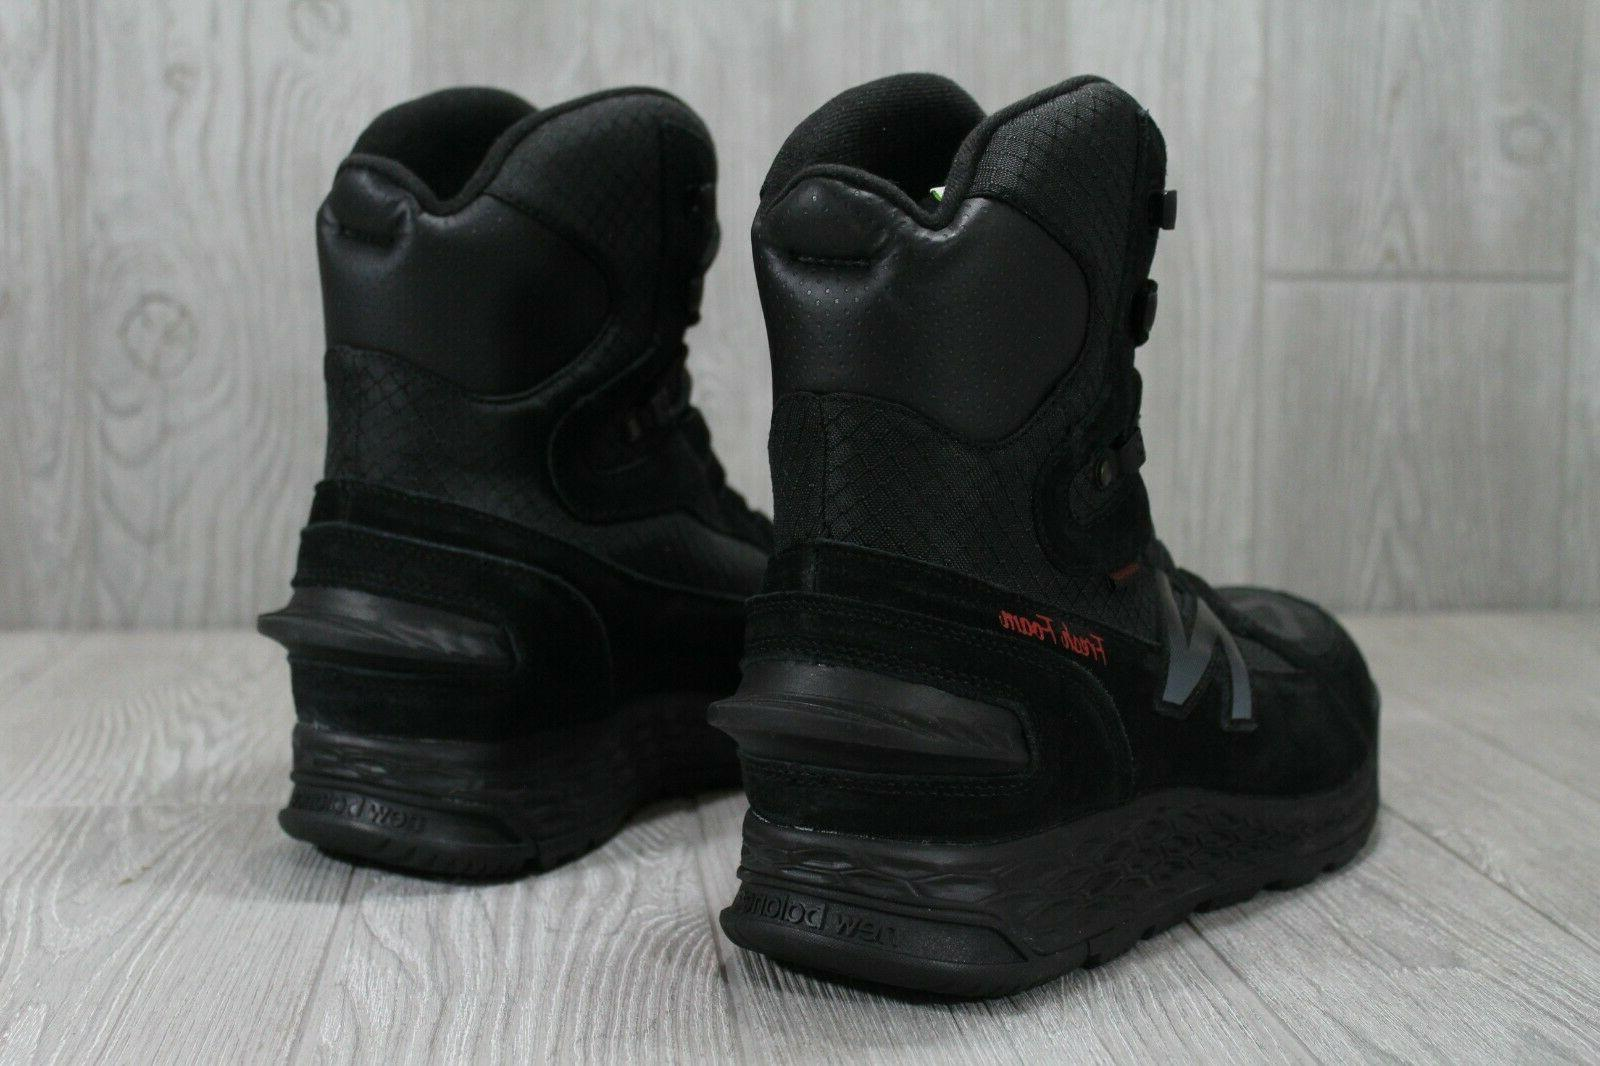 38 New Fresh Foam Boots Men's Size 9.5 BM1000BK